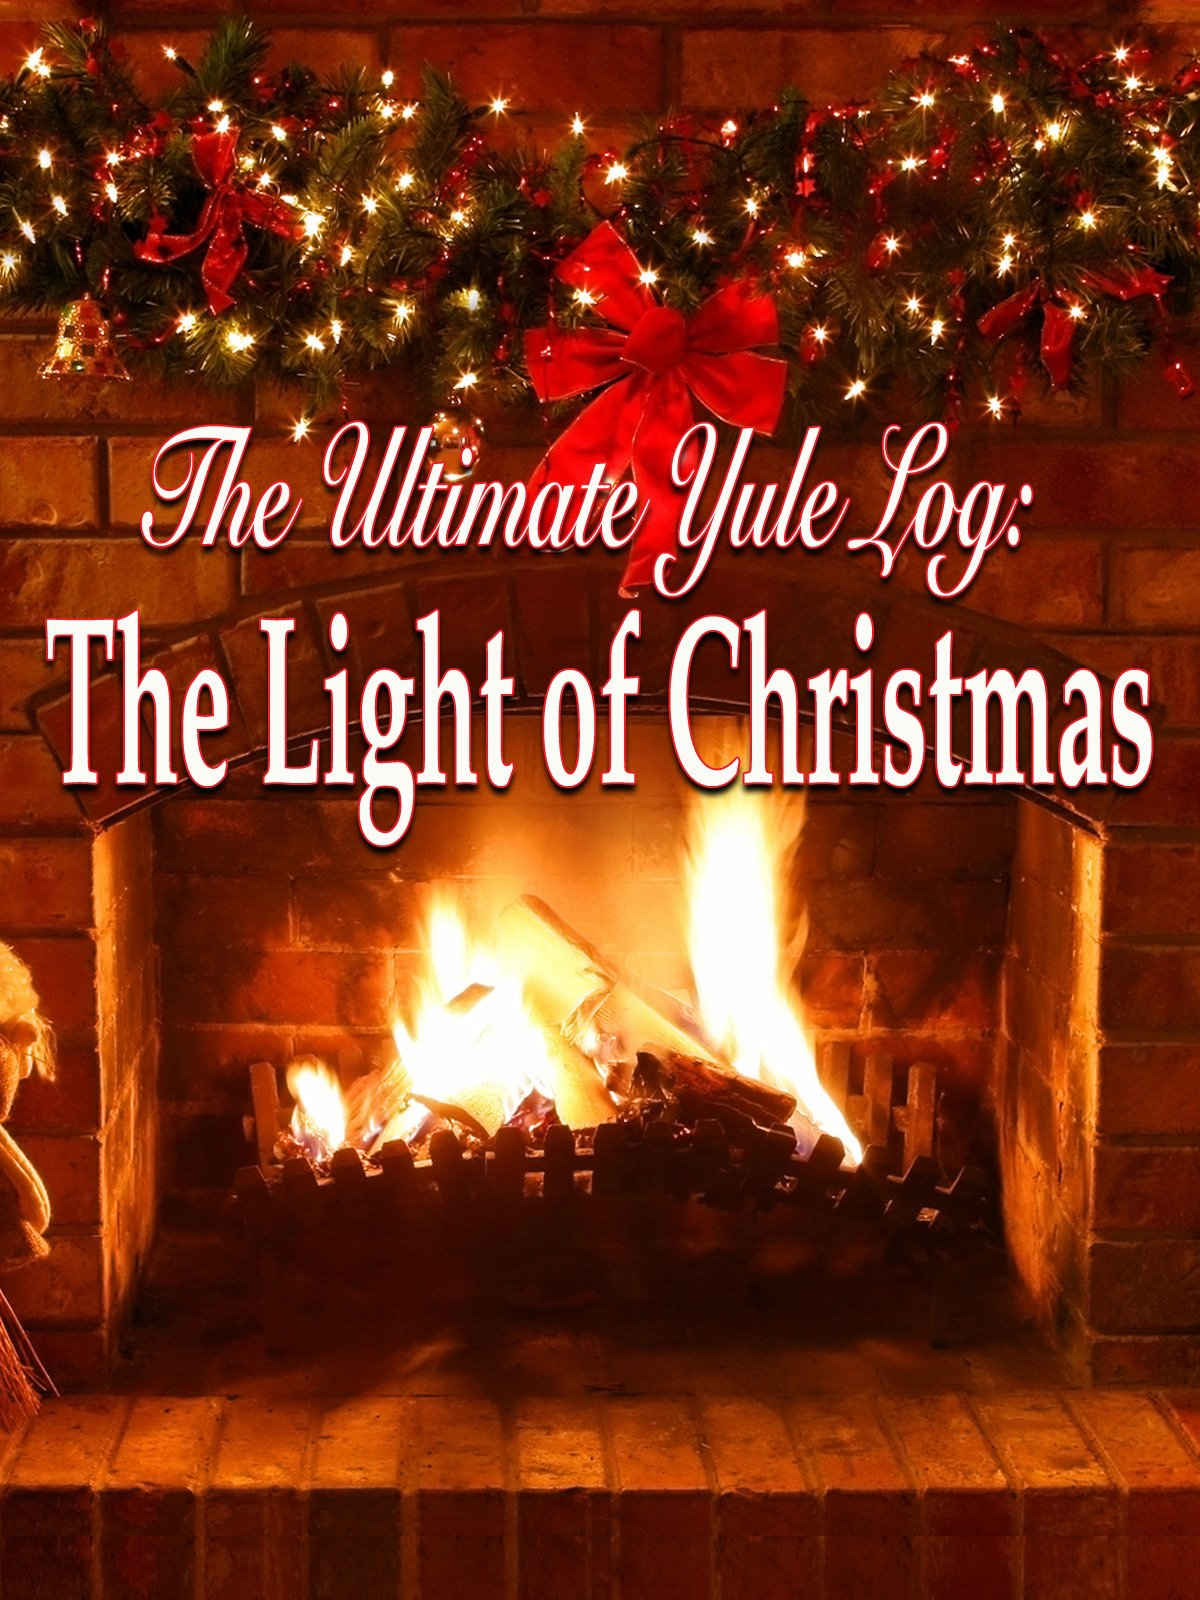 Amazon.com: Watch The Ultimate Yule Log: The Light of Christmas ...